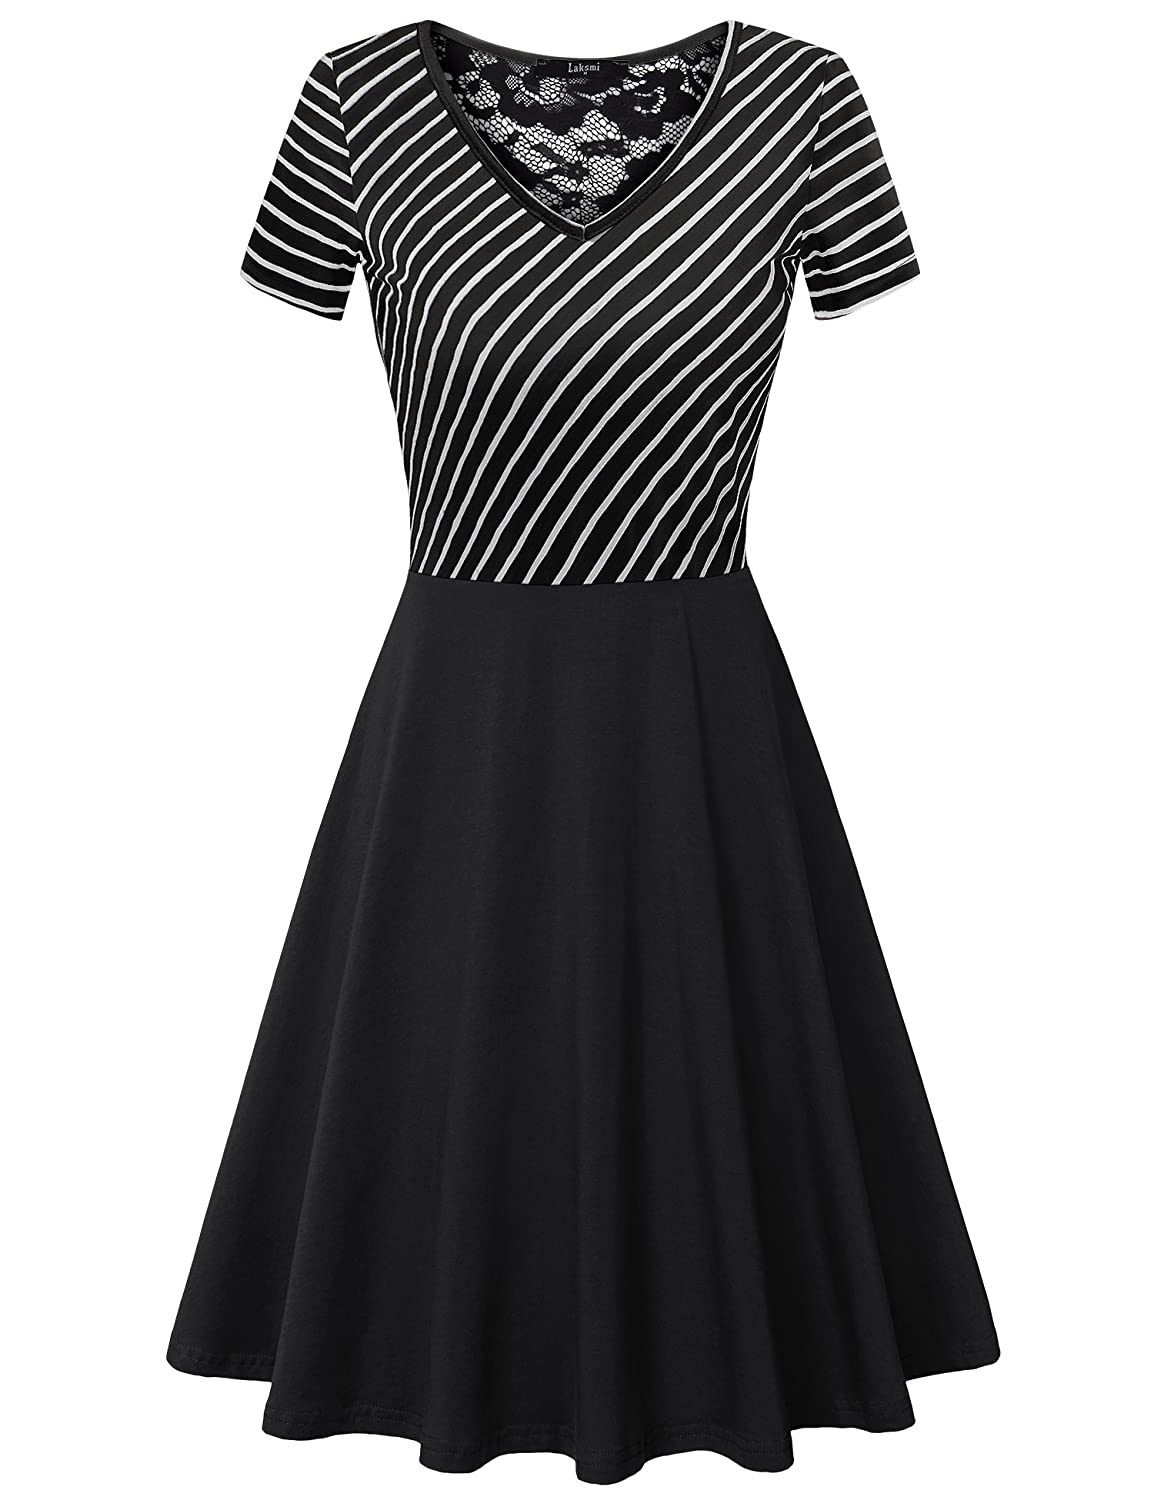 Top 10 wholesale Black Midi Dress For Funeral - Chinabrands.com 29e12164fea5